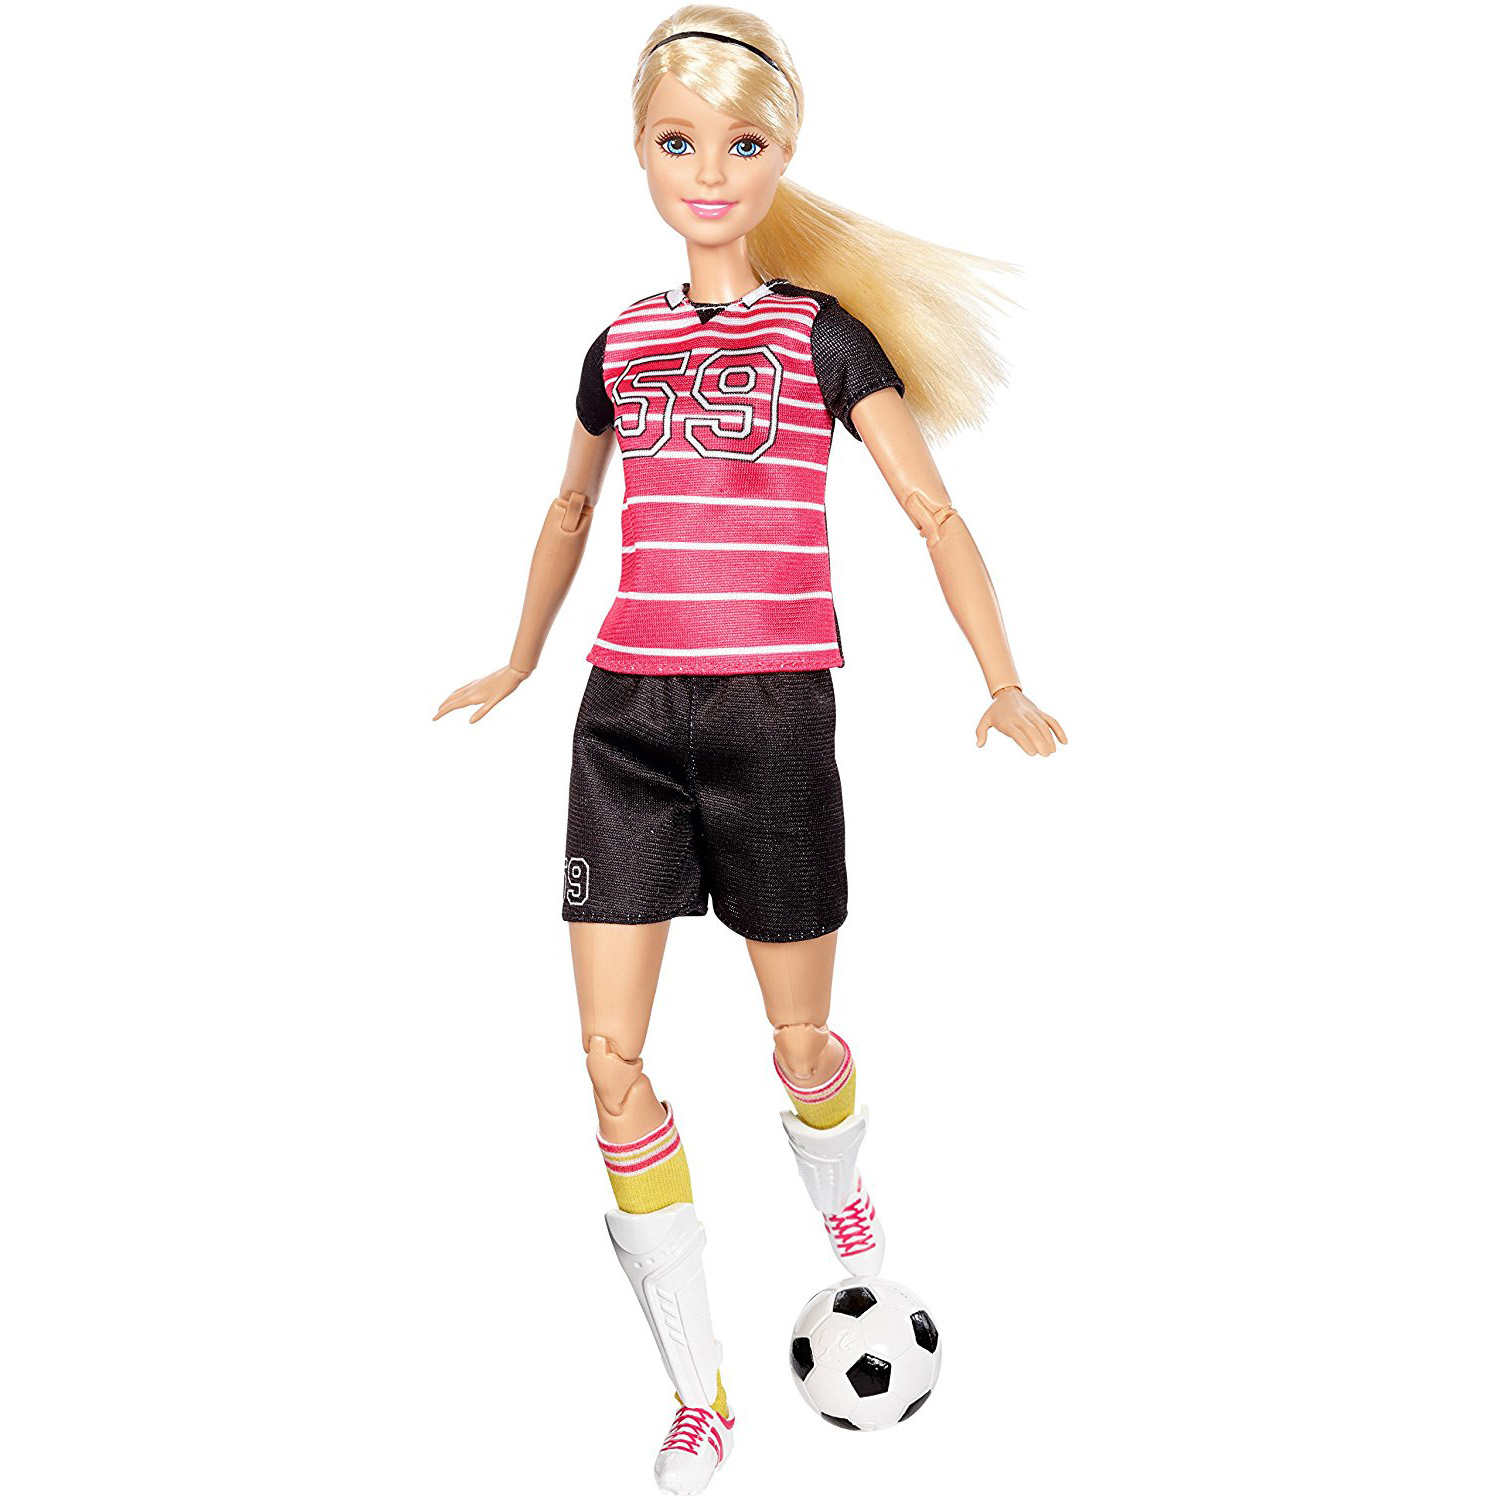 Barbie Made To Move Soccer Player Doll by MATTEL INC.